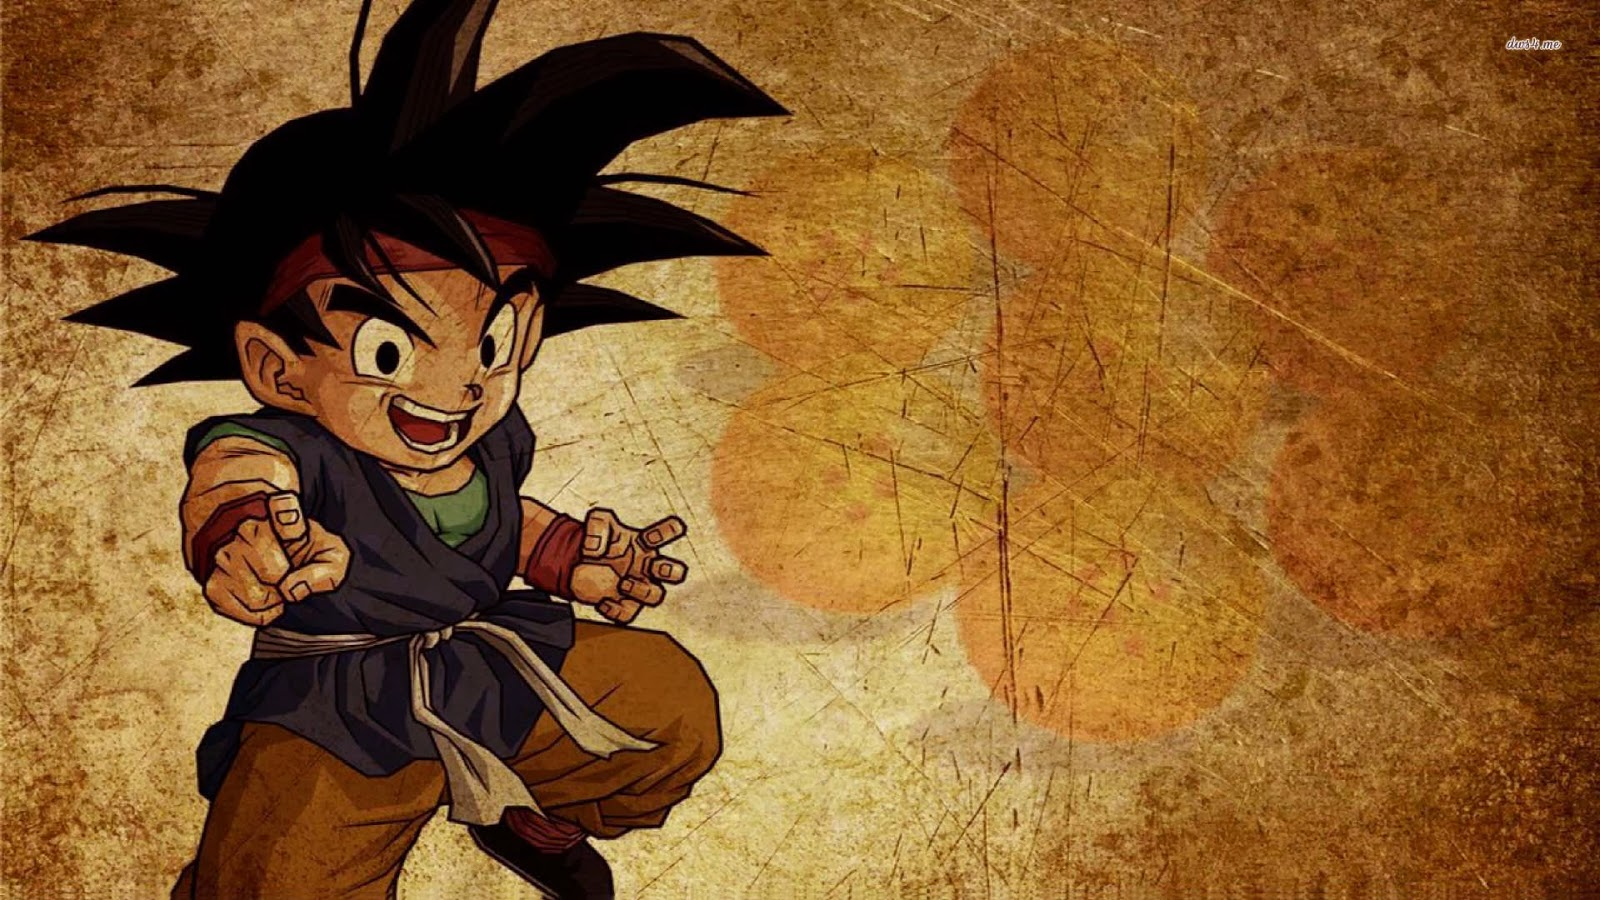 Dragon Ball z Free HD Wallpaper | Free HD Wallpaper